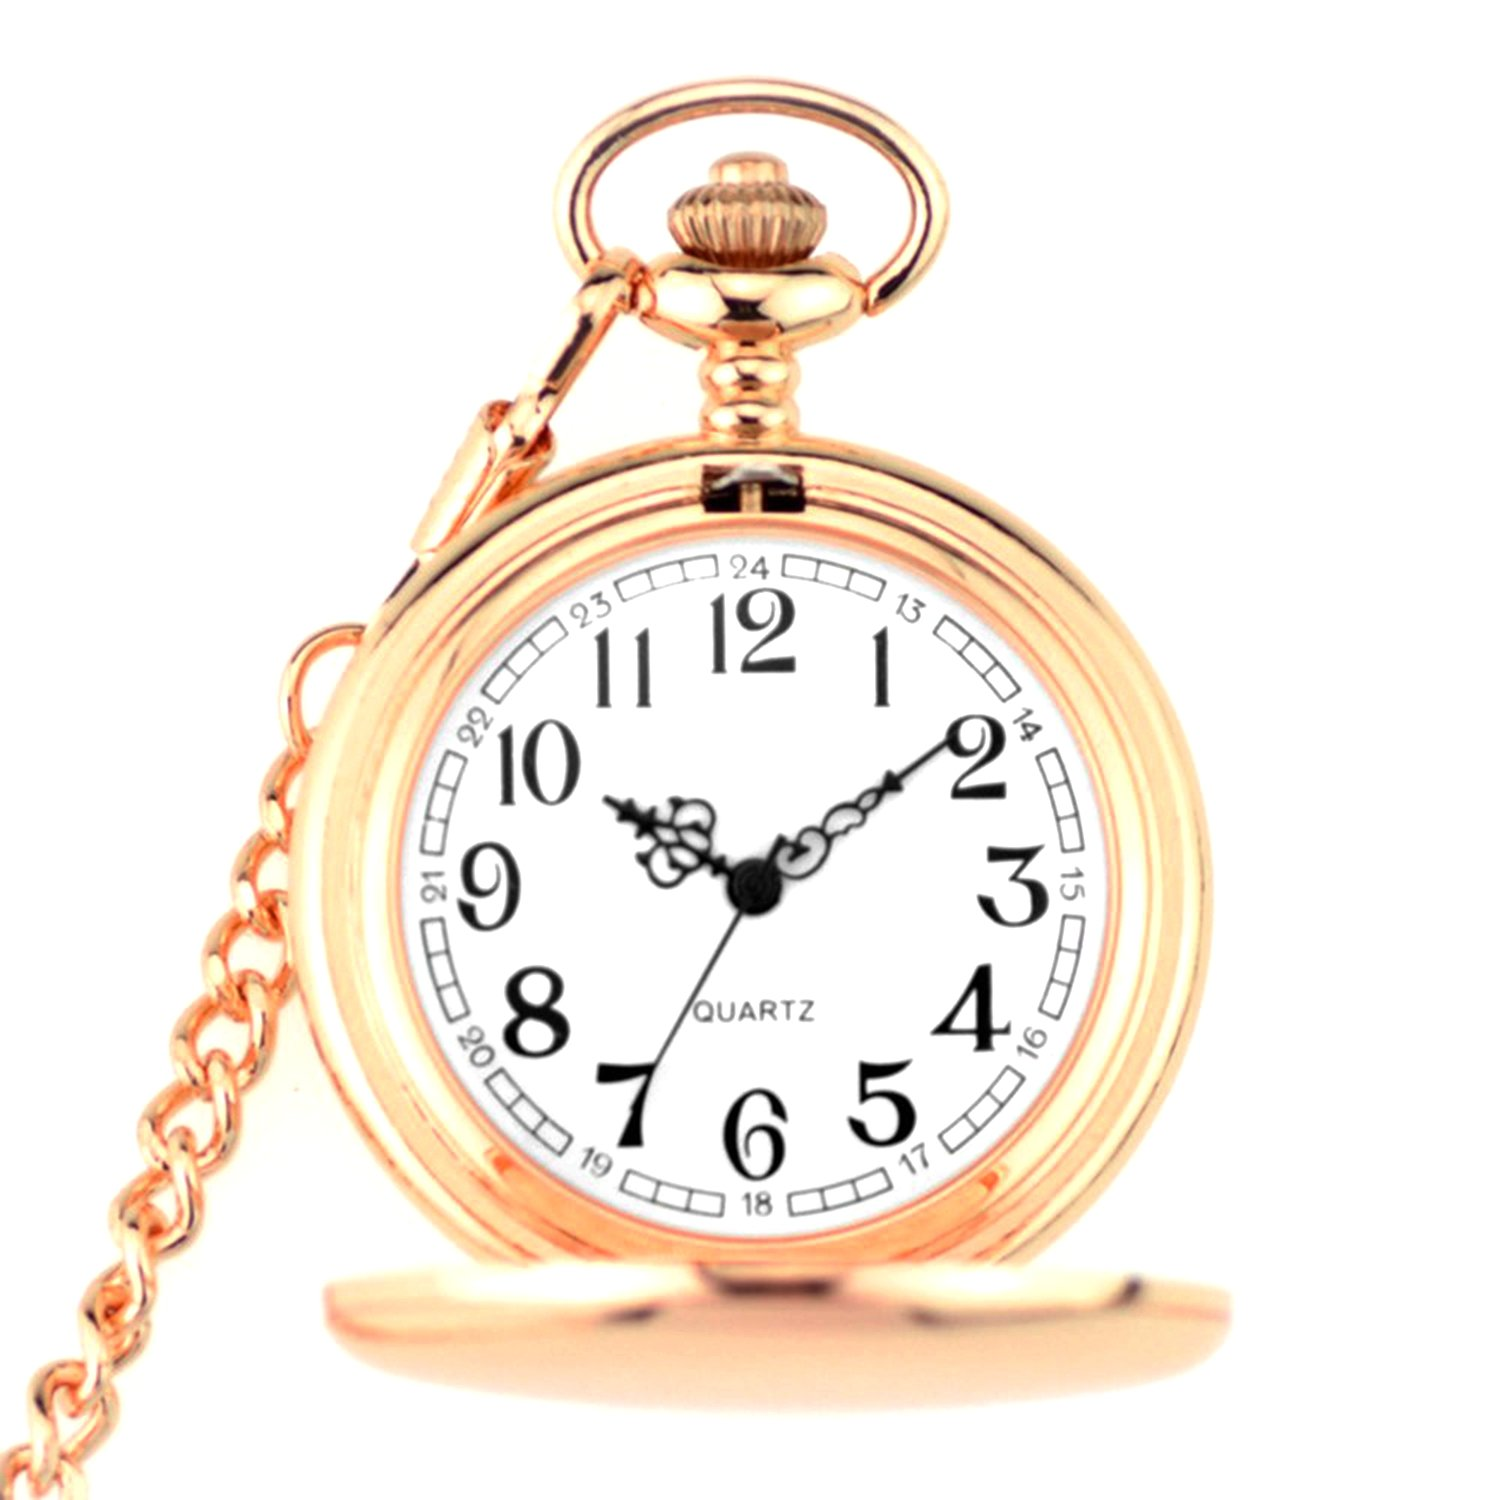 Mens Womens Xmas Gift Smooth Vintage Gold Quartz Pocket Watch with Chain